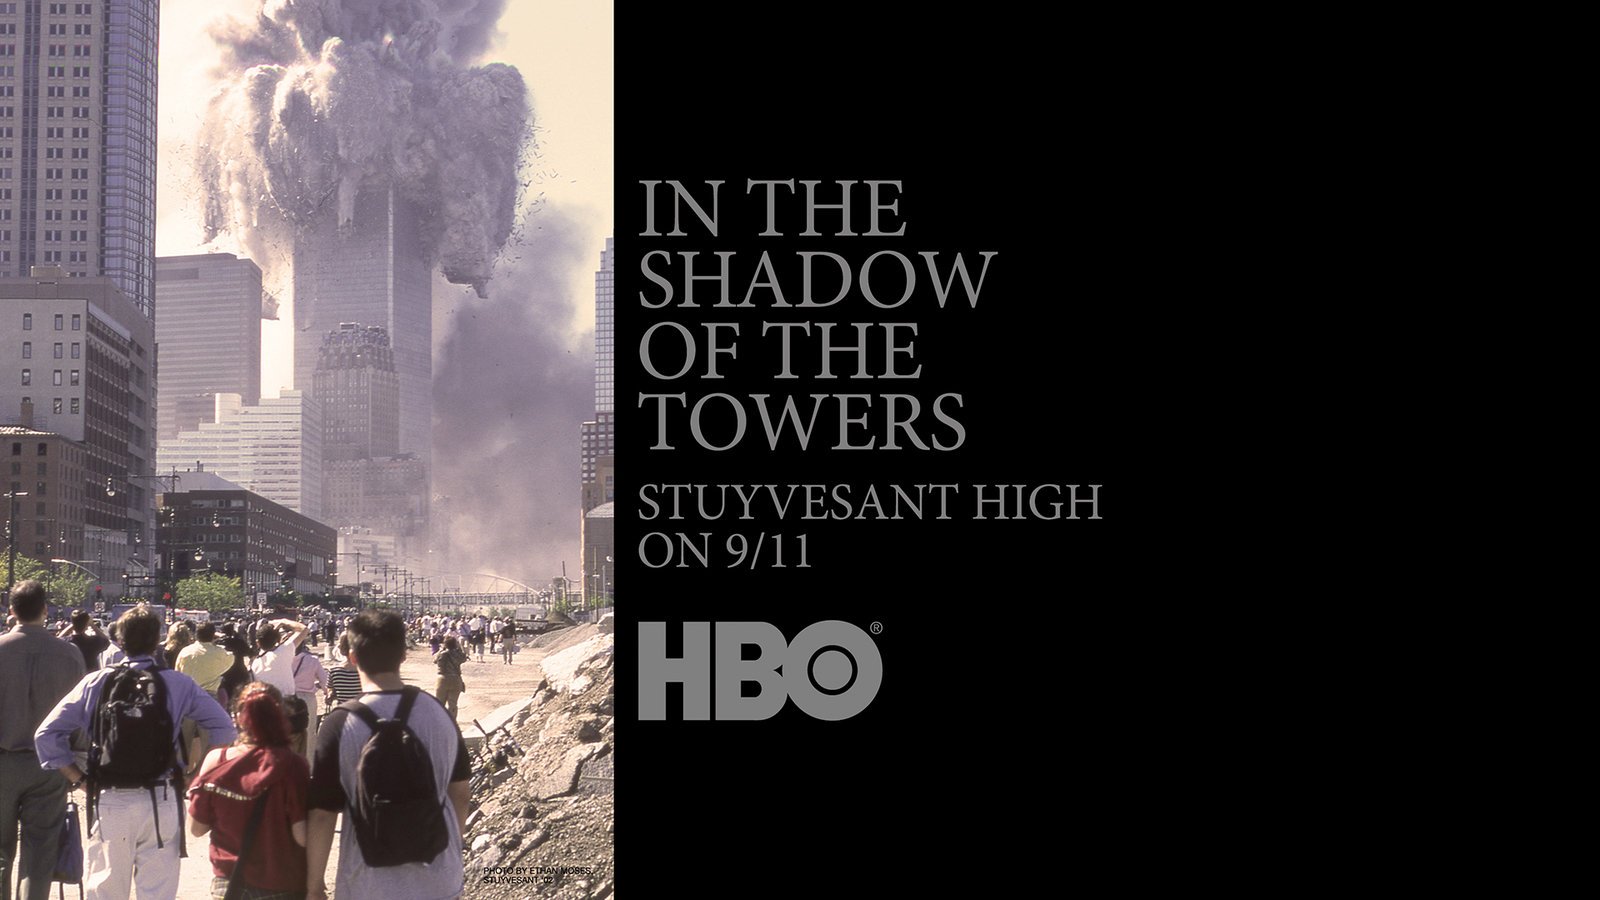 In the Shadow of the Towers: - Stuyvesant High on 9/11